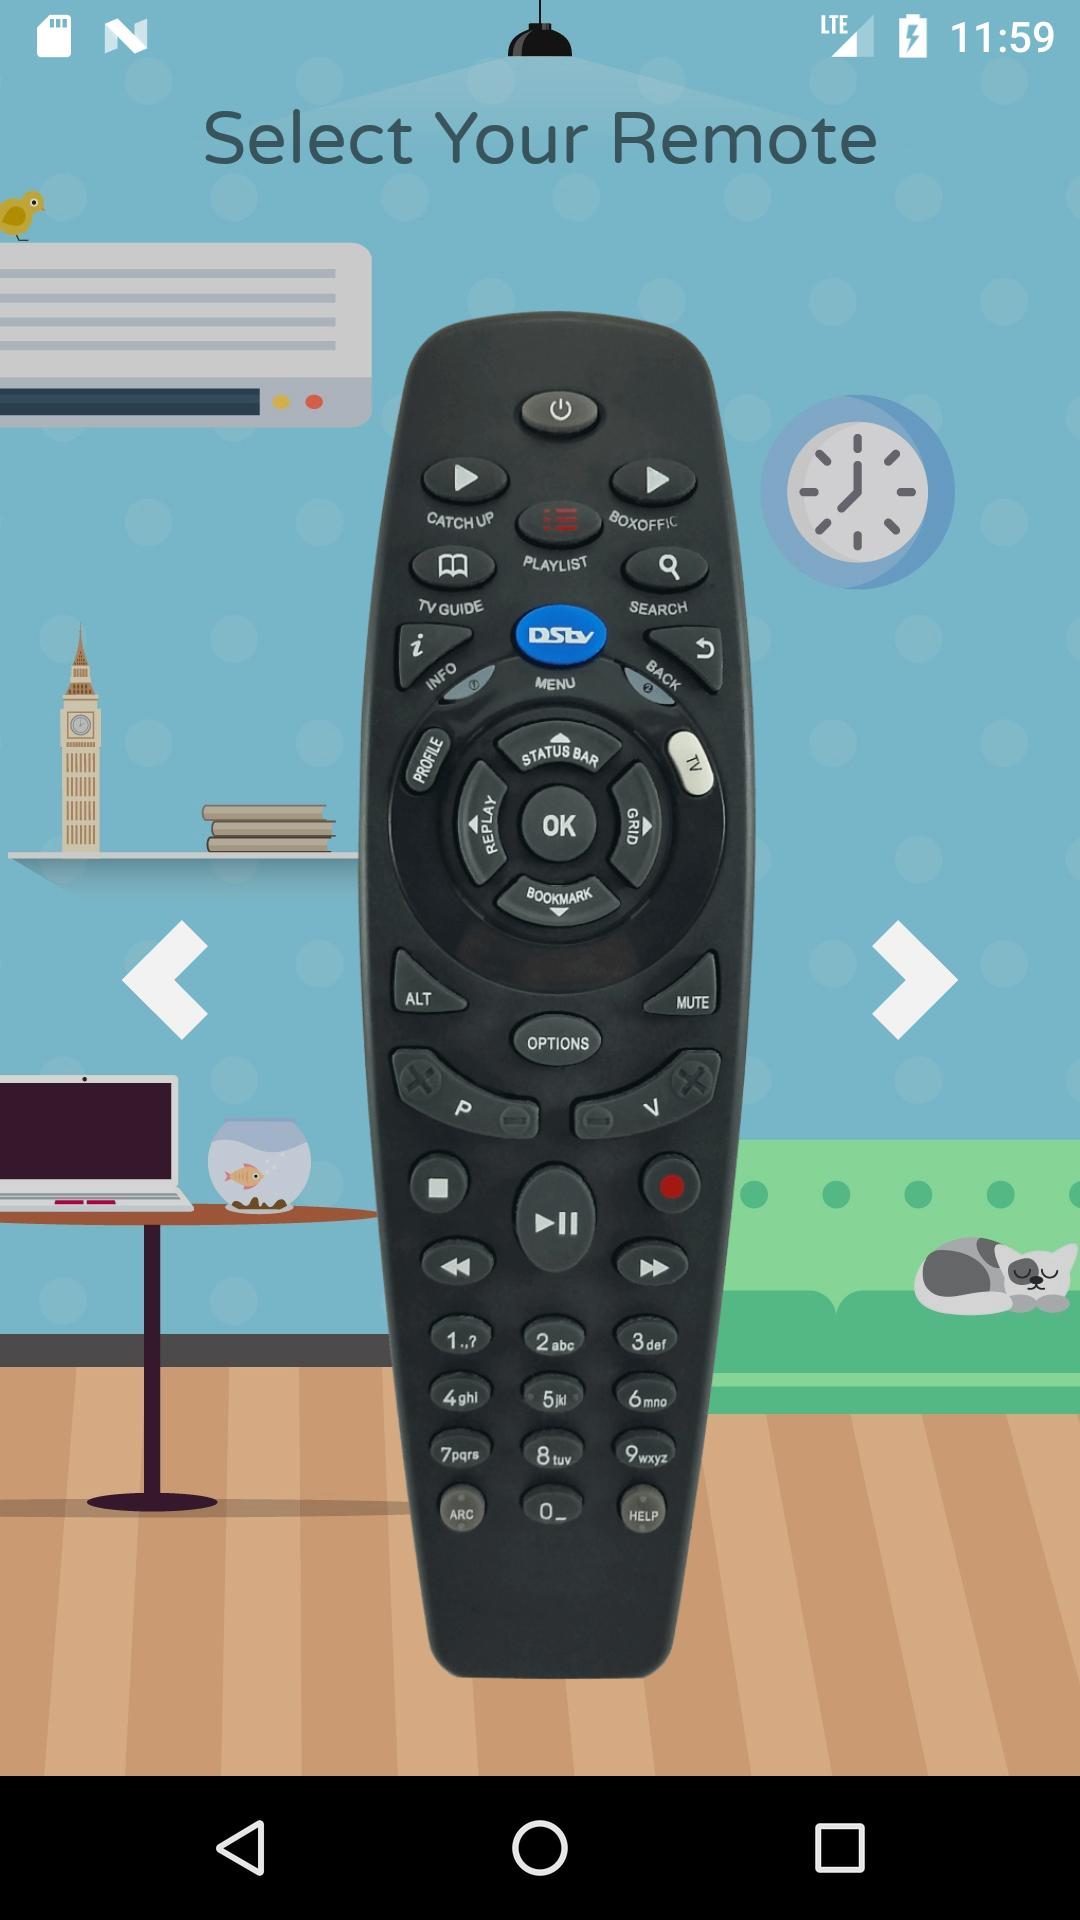 Remote Control For DSTV for Android - APK Download